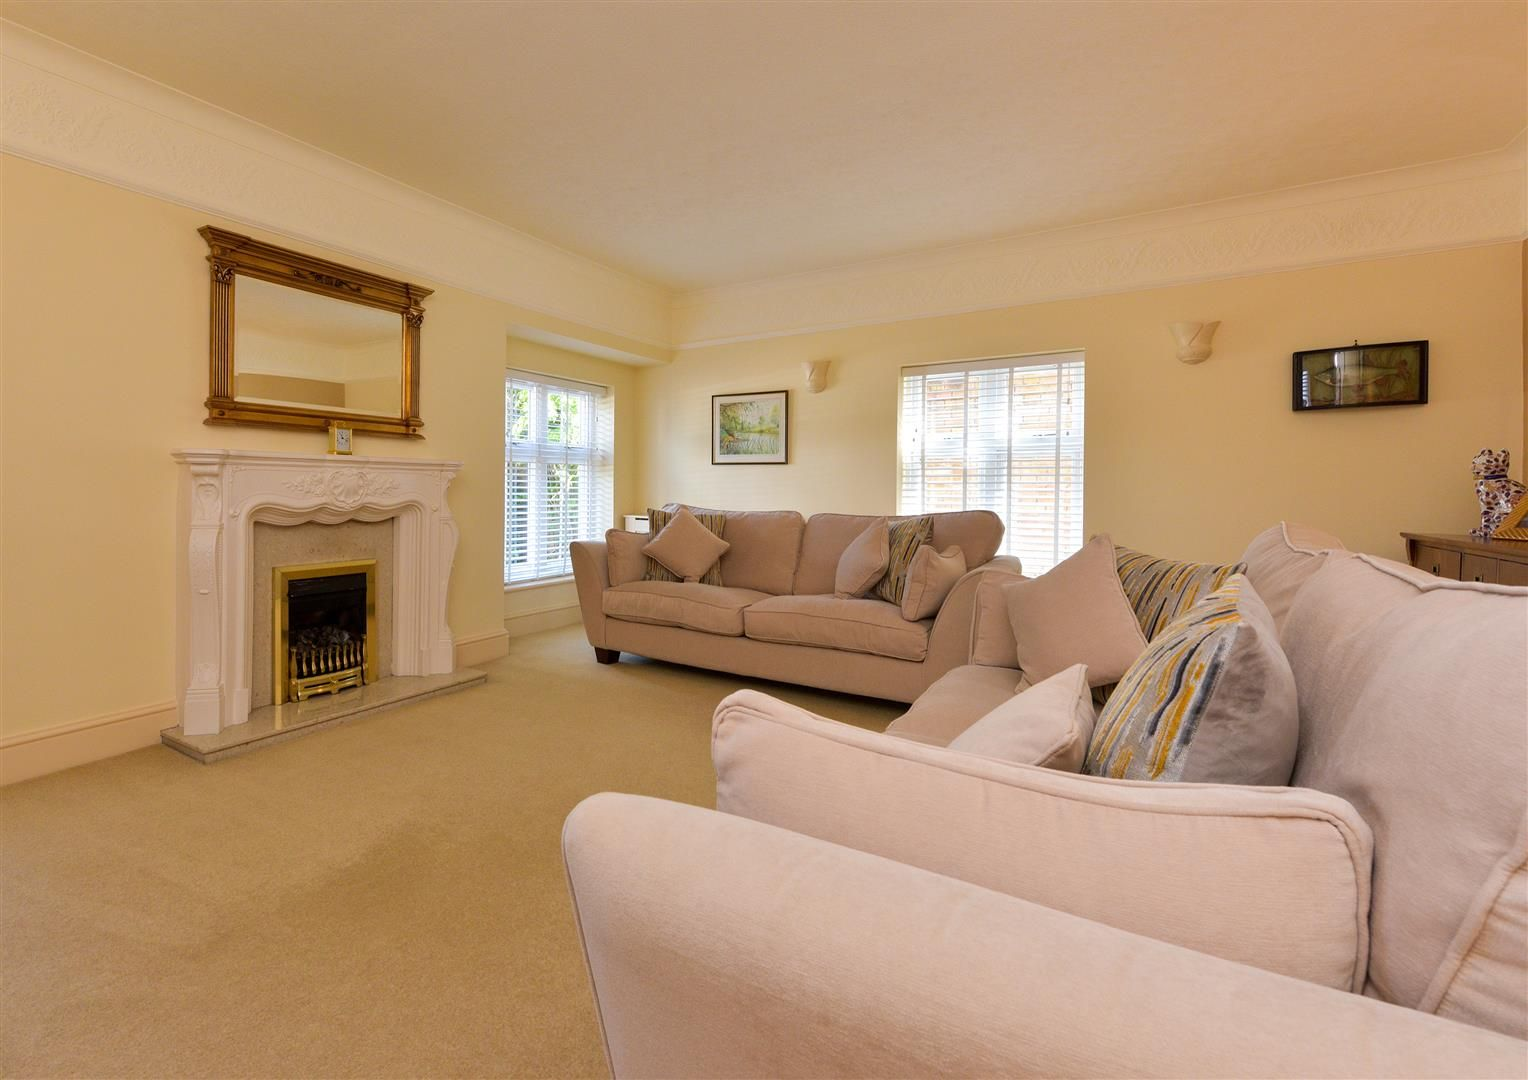 6 bed detached for sale in Hagley 9